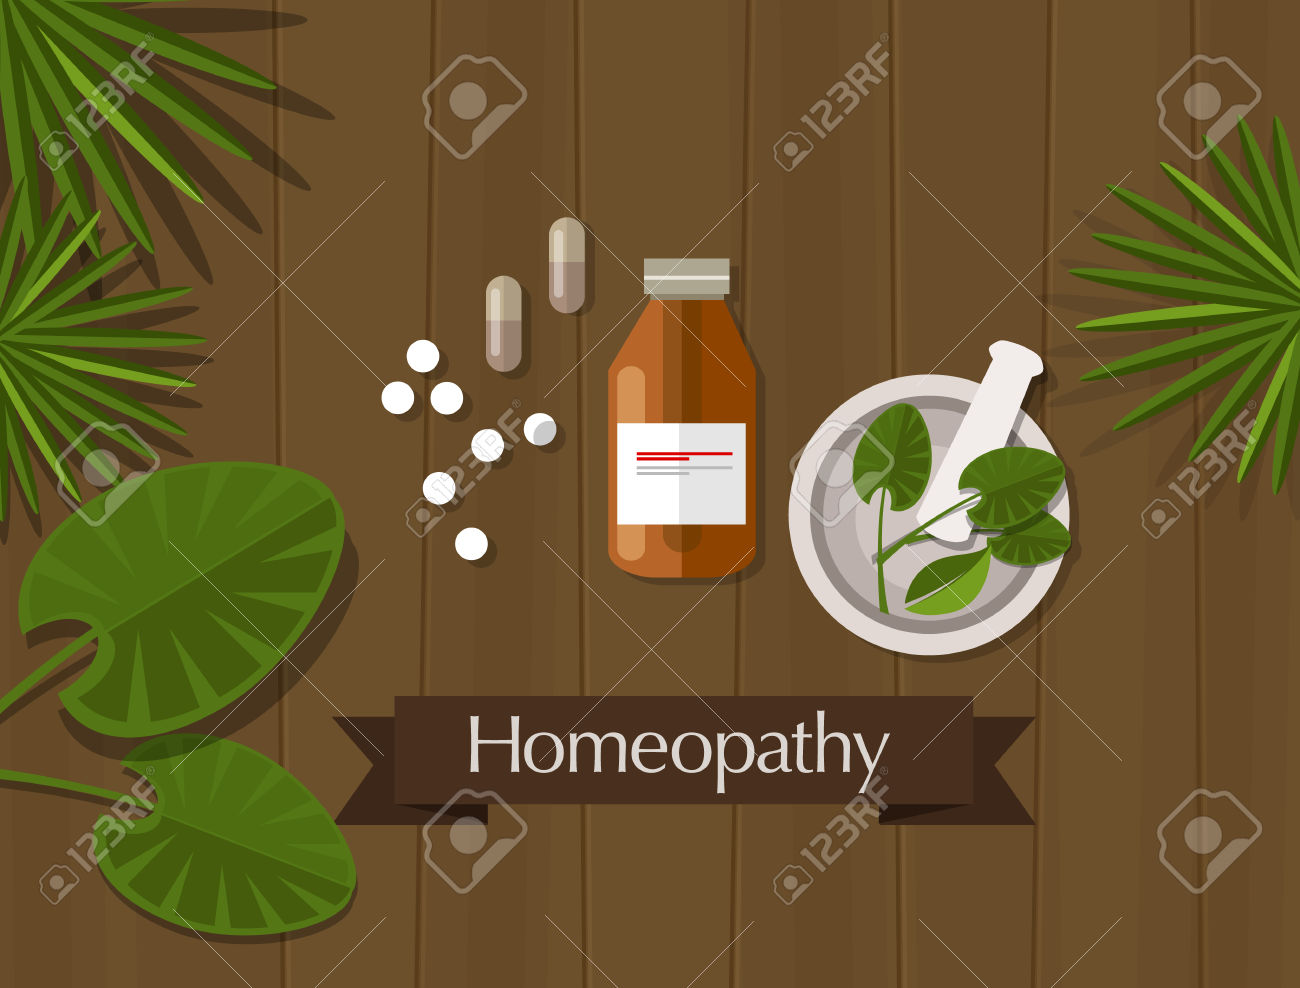 Homeopathic Clip Art.